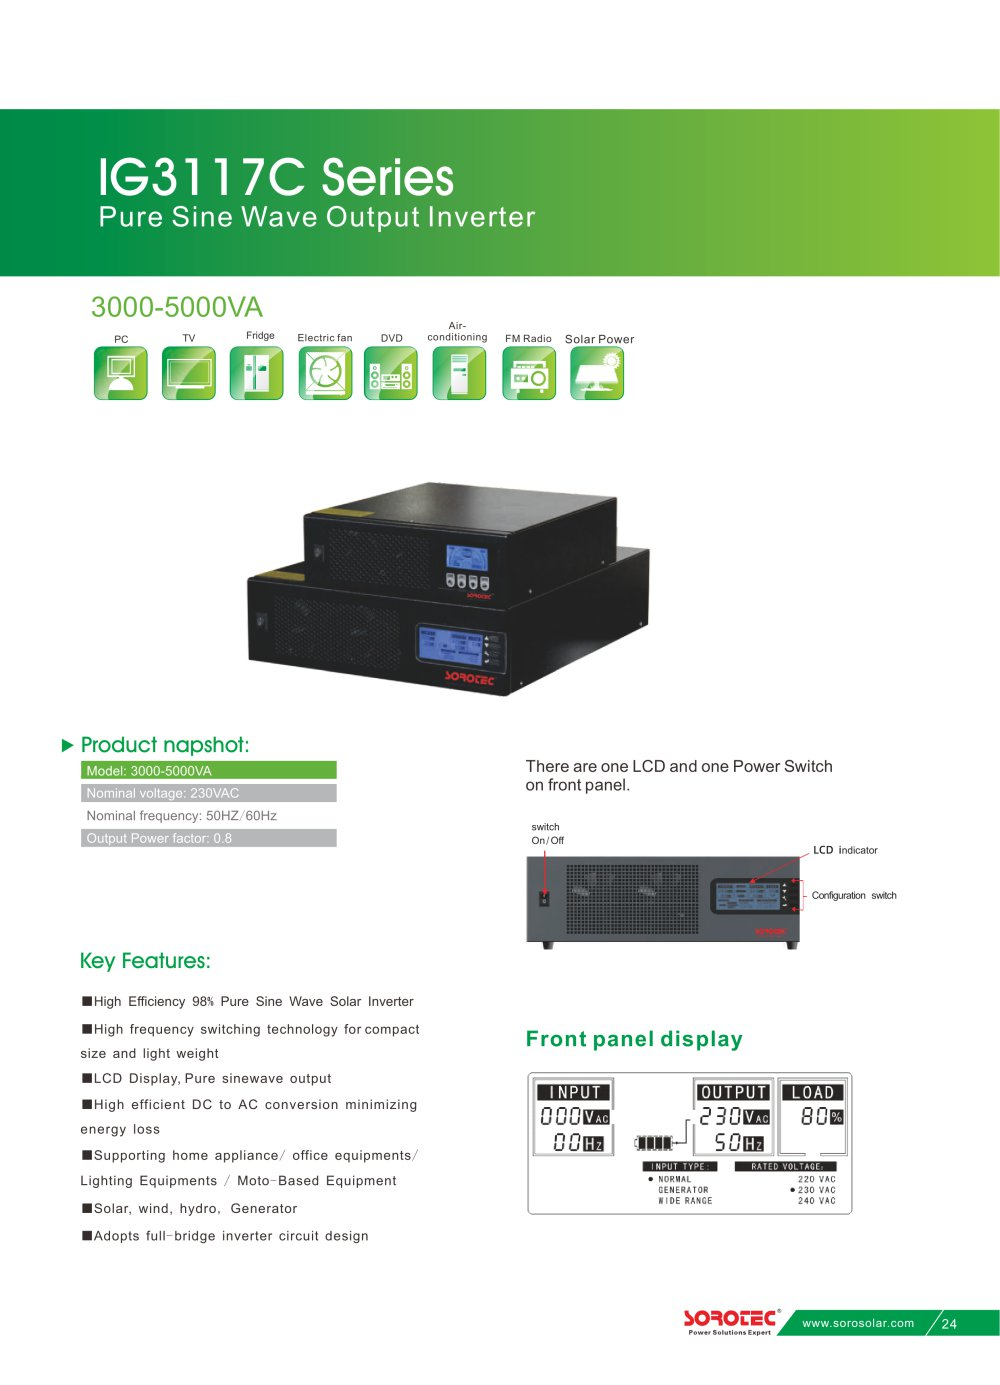 Pure Sine Wave Solar Inverter Ig3117c 3 5kva Shenzhen Soro High Power Circuit 1 2 Pages